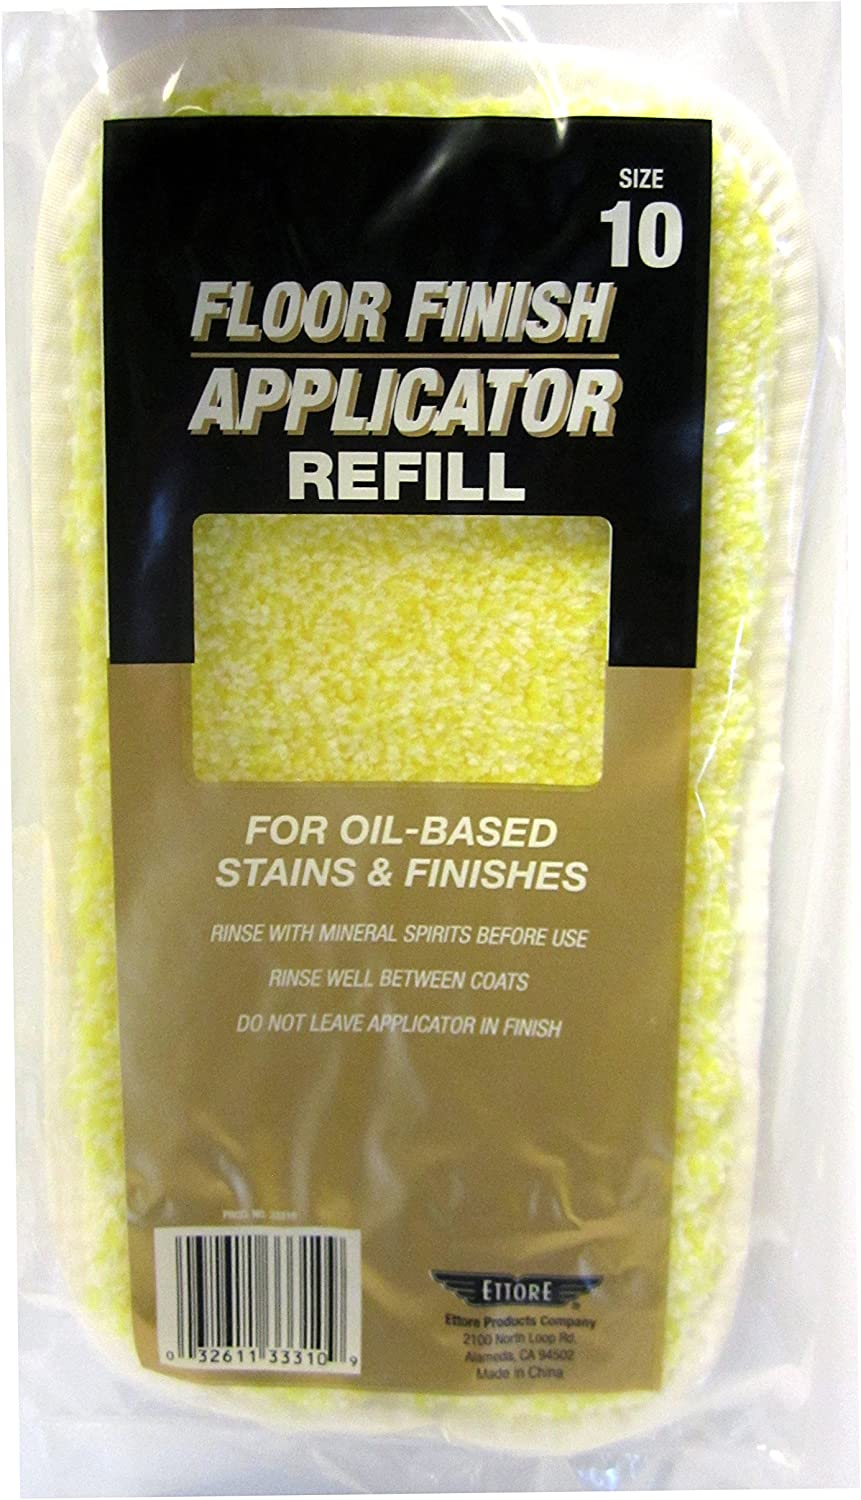 Ettore 33312 Oil-Based Floor Finish Applicator Refill 1-Count